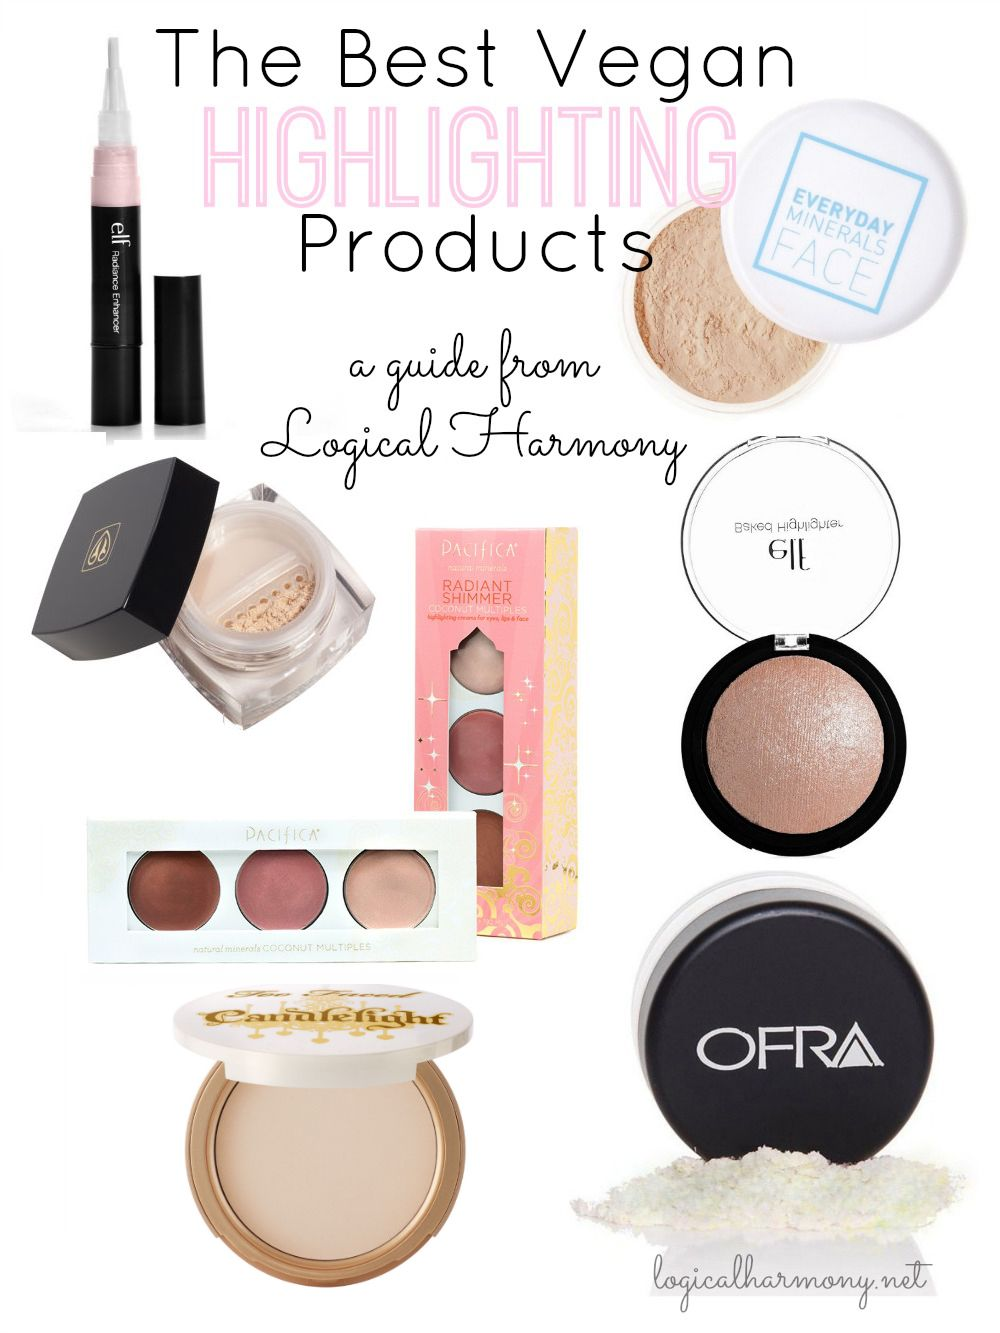 The Best Vegan Highlighting Products Cruelty free makeup